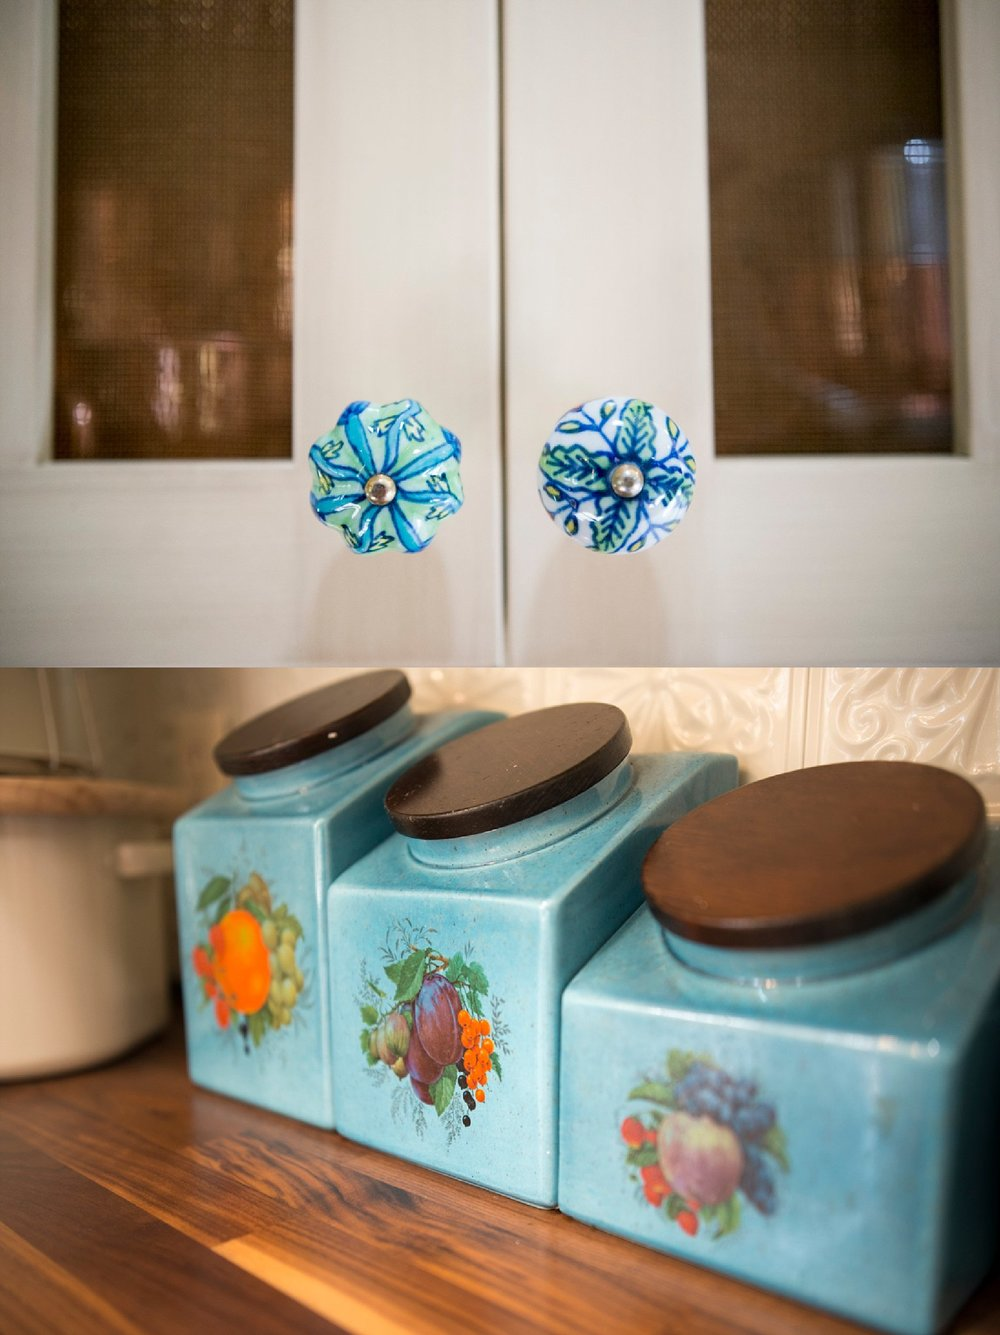 Top:  Funky knobs and the copper screen behind it.  Bottom:  These canisters were from her hope chest.